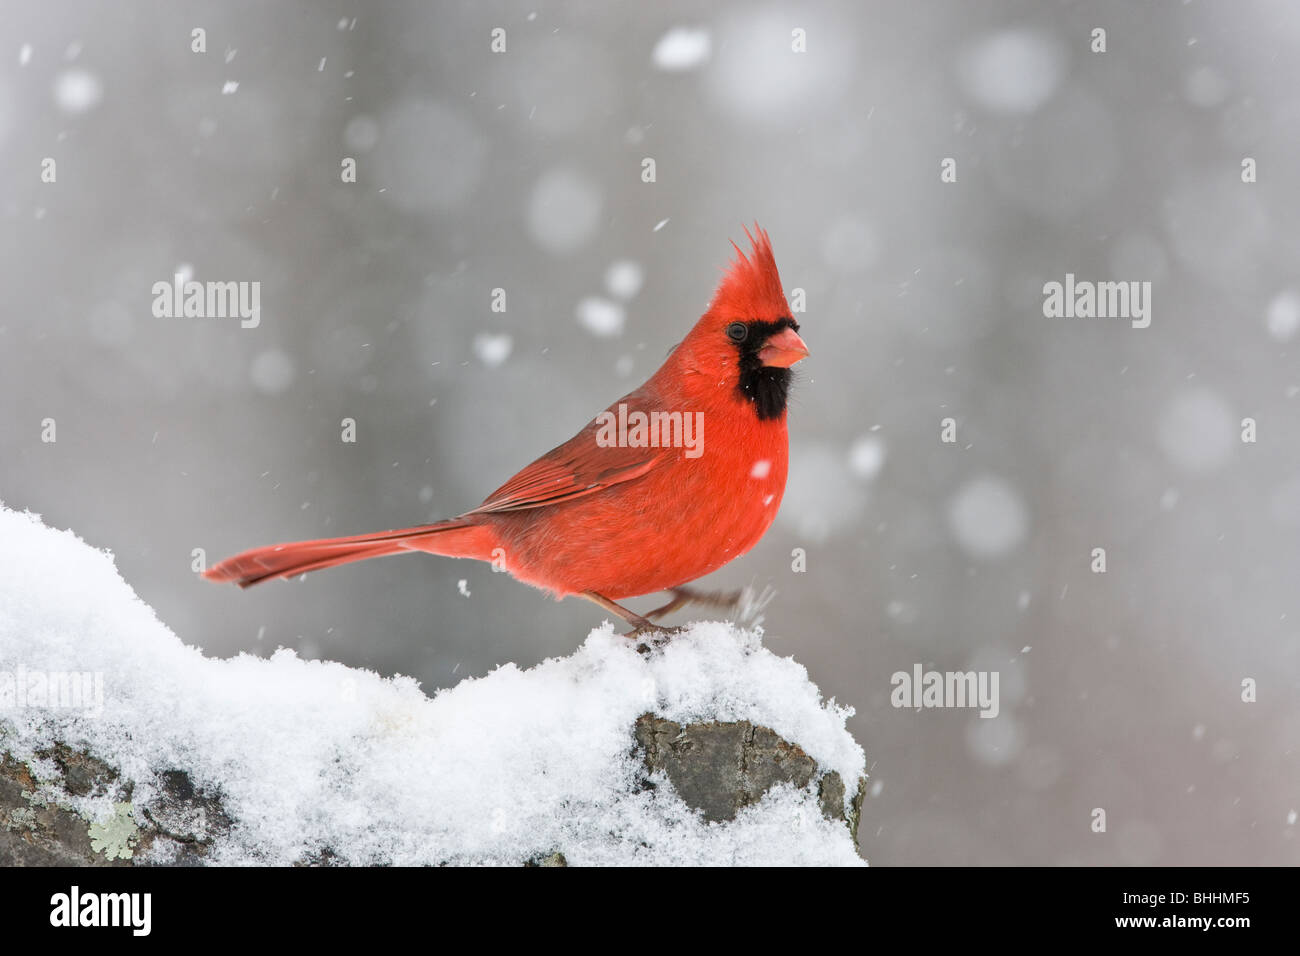 Northern Cardinal in Snow - Stock Image